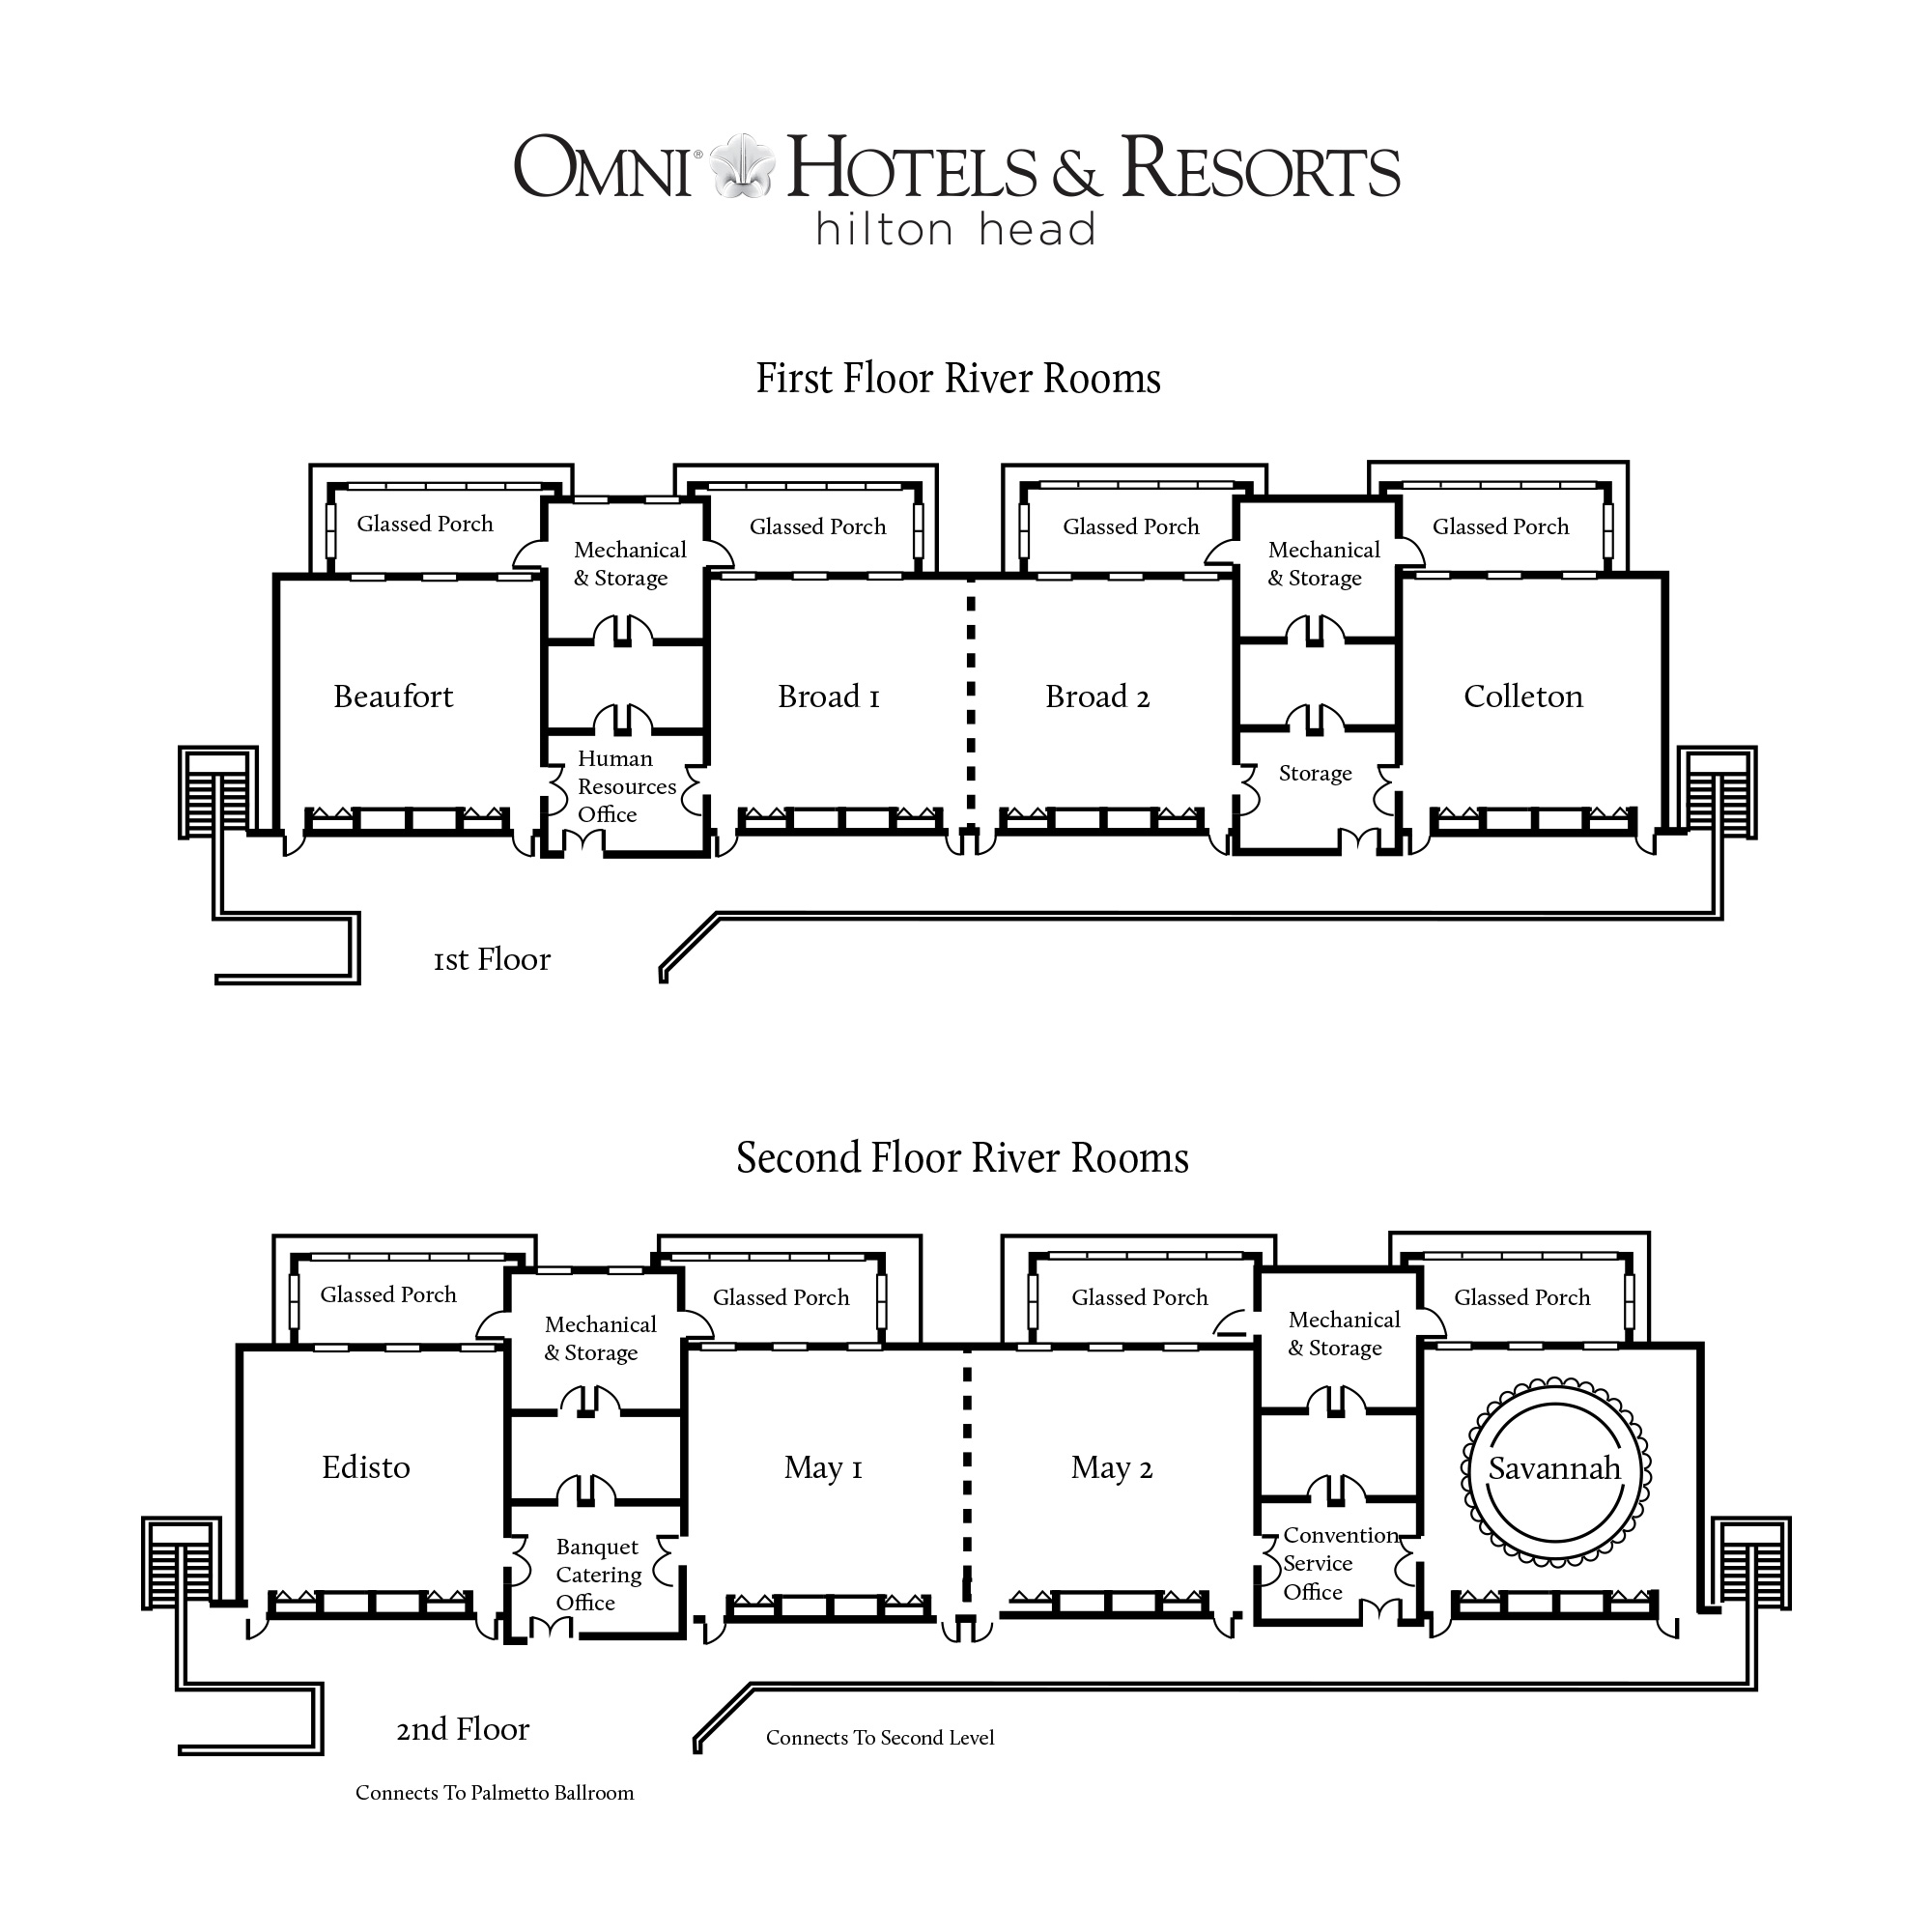 Omni Hotels and Resorts Floor plan